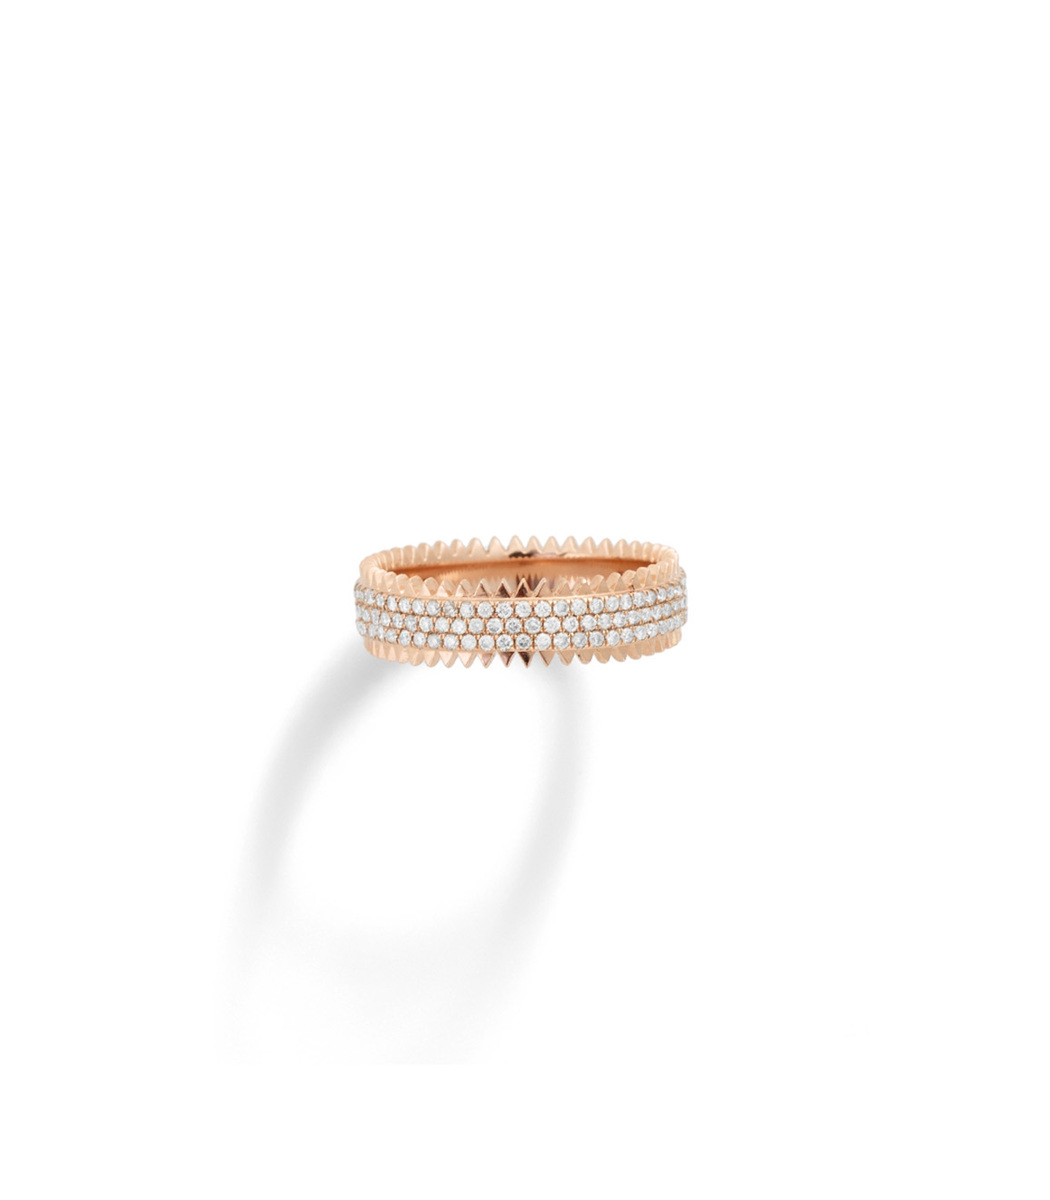 EVA FEHREN Gold Triple Zipper Band Ring